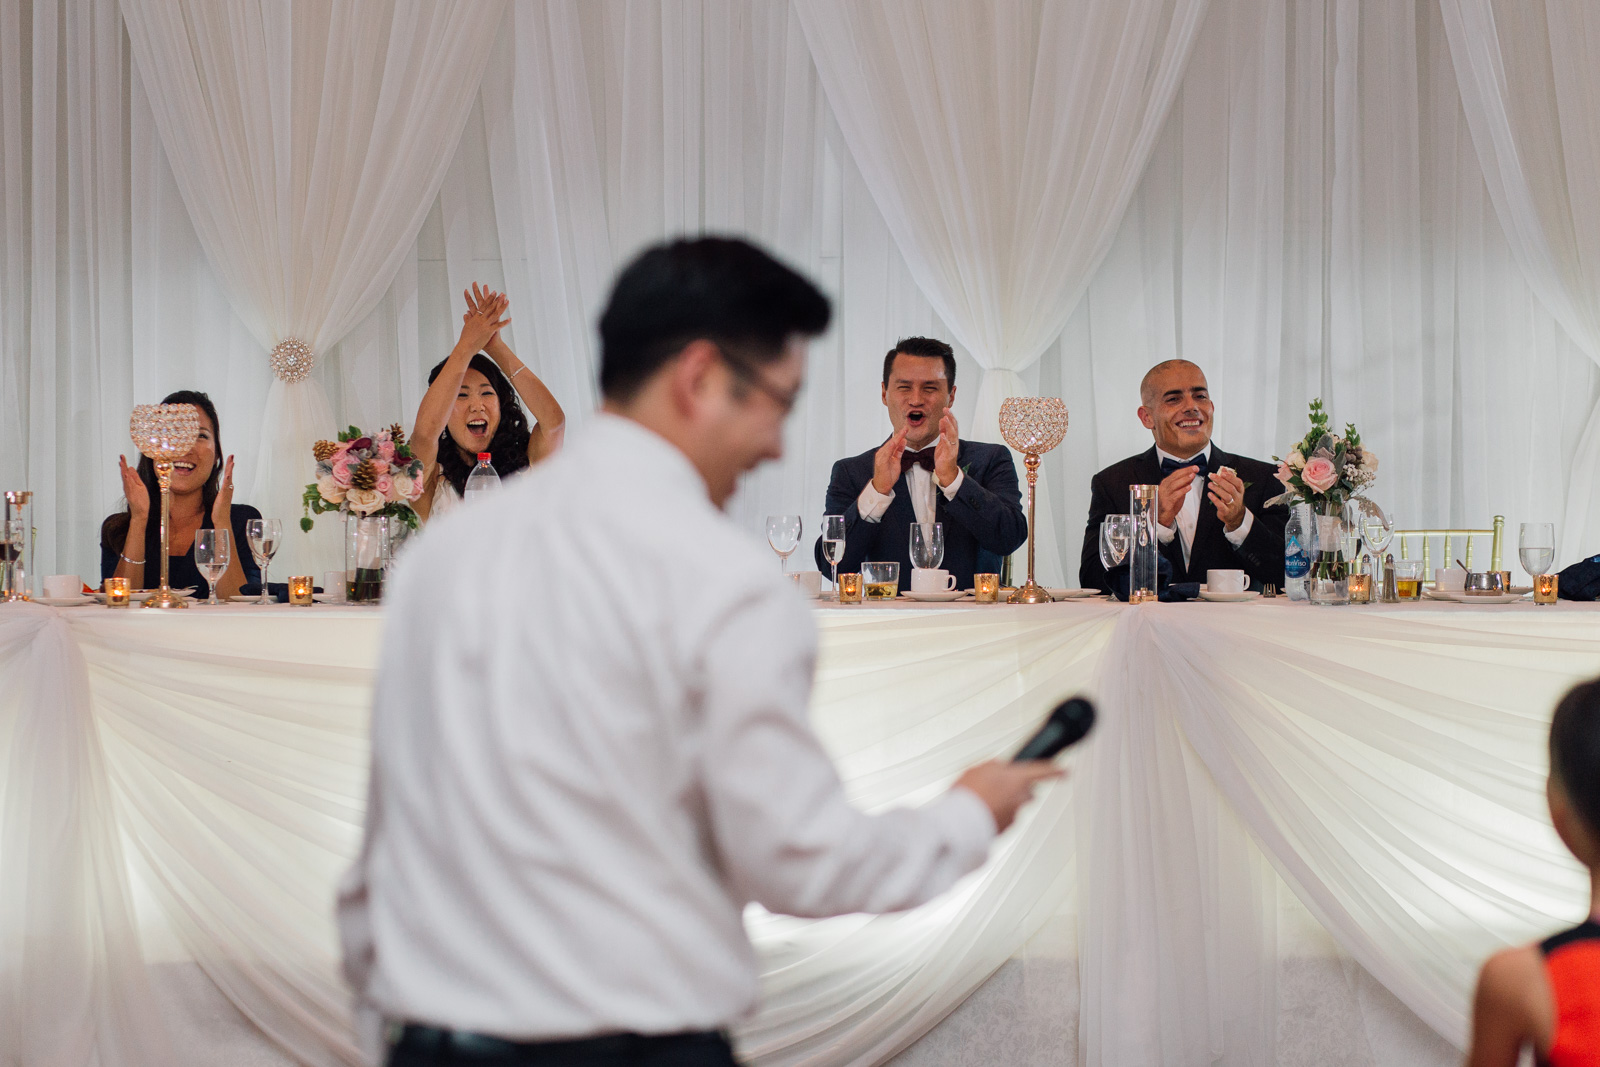 vaughn-wedding-photography-images-by-nick-driver-and-sath-arul-of-artanis-collective_21.jpg